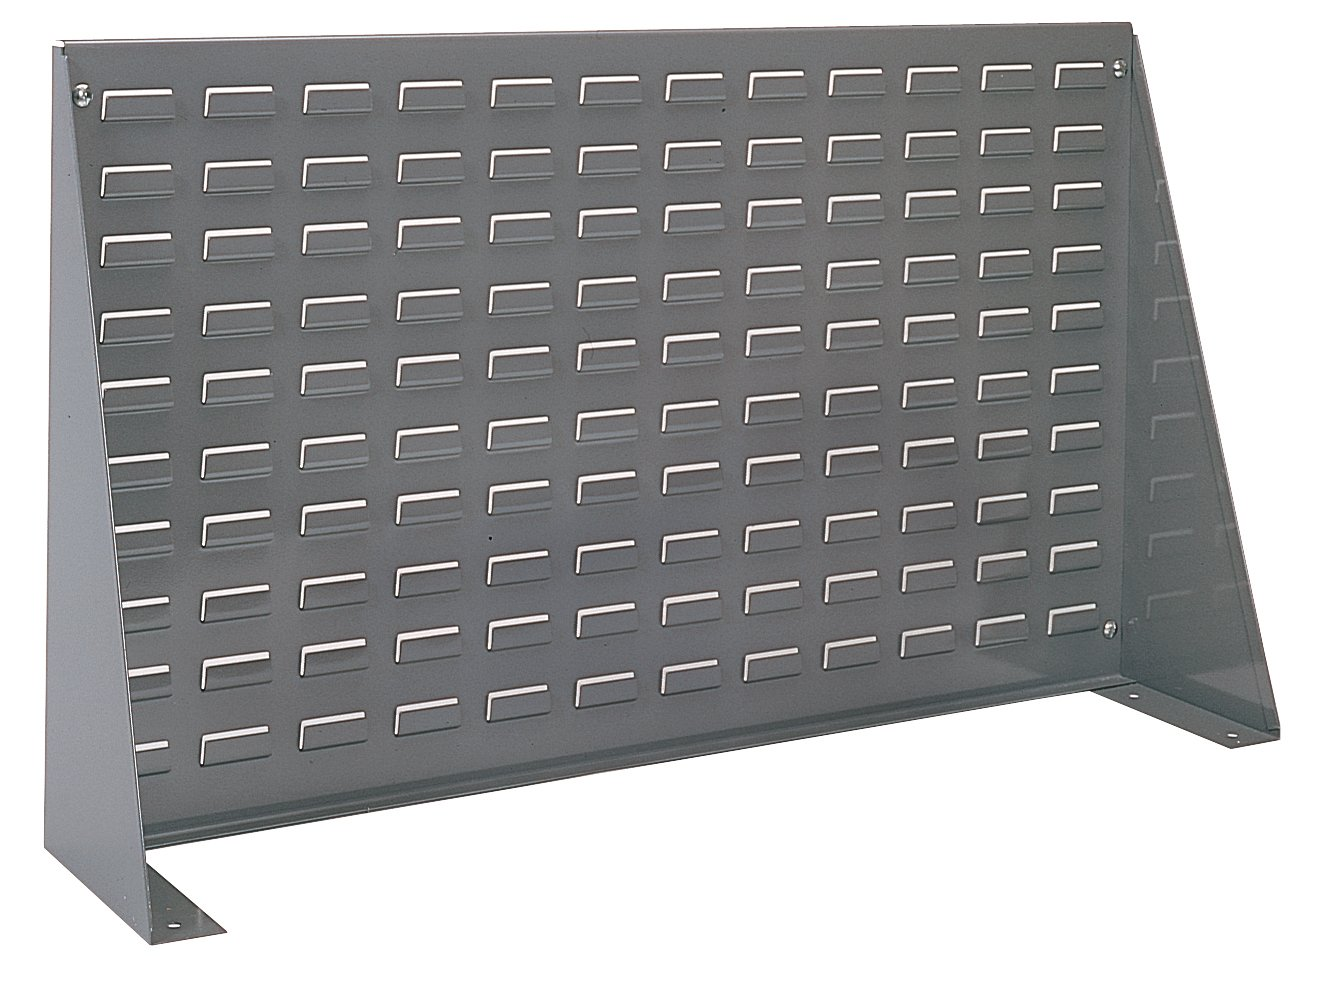 Akro-Mils 98636 Louvered Steel Panel Bench Rack for mounting AkroBins, 36-Inch Length by 20-Inch Height by 8-Inch Width, Grey